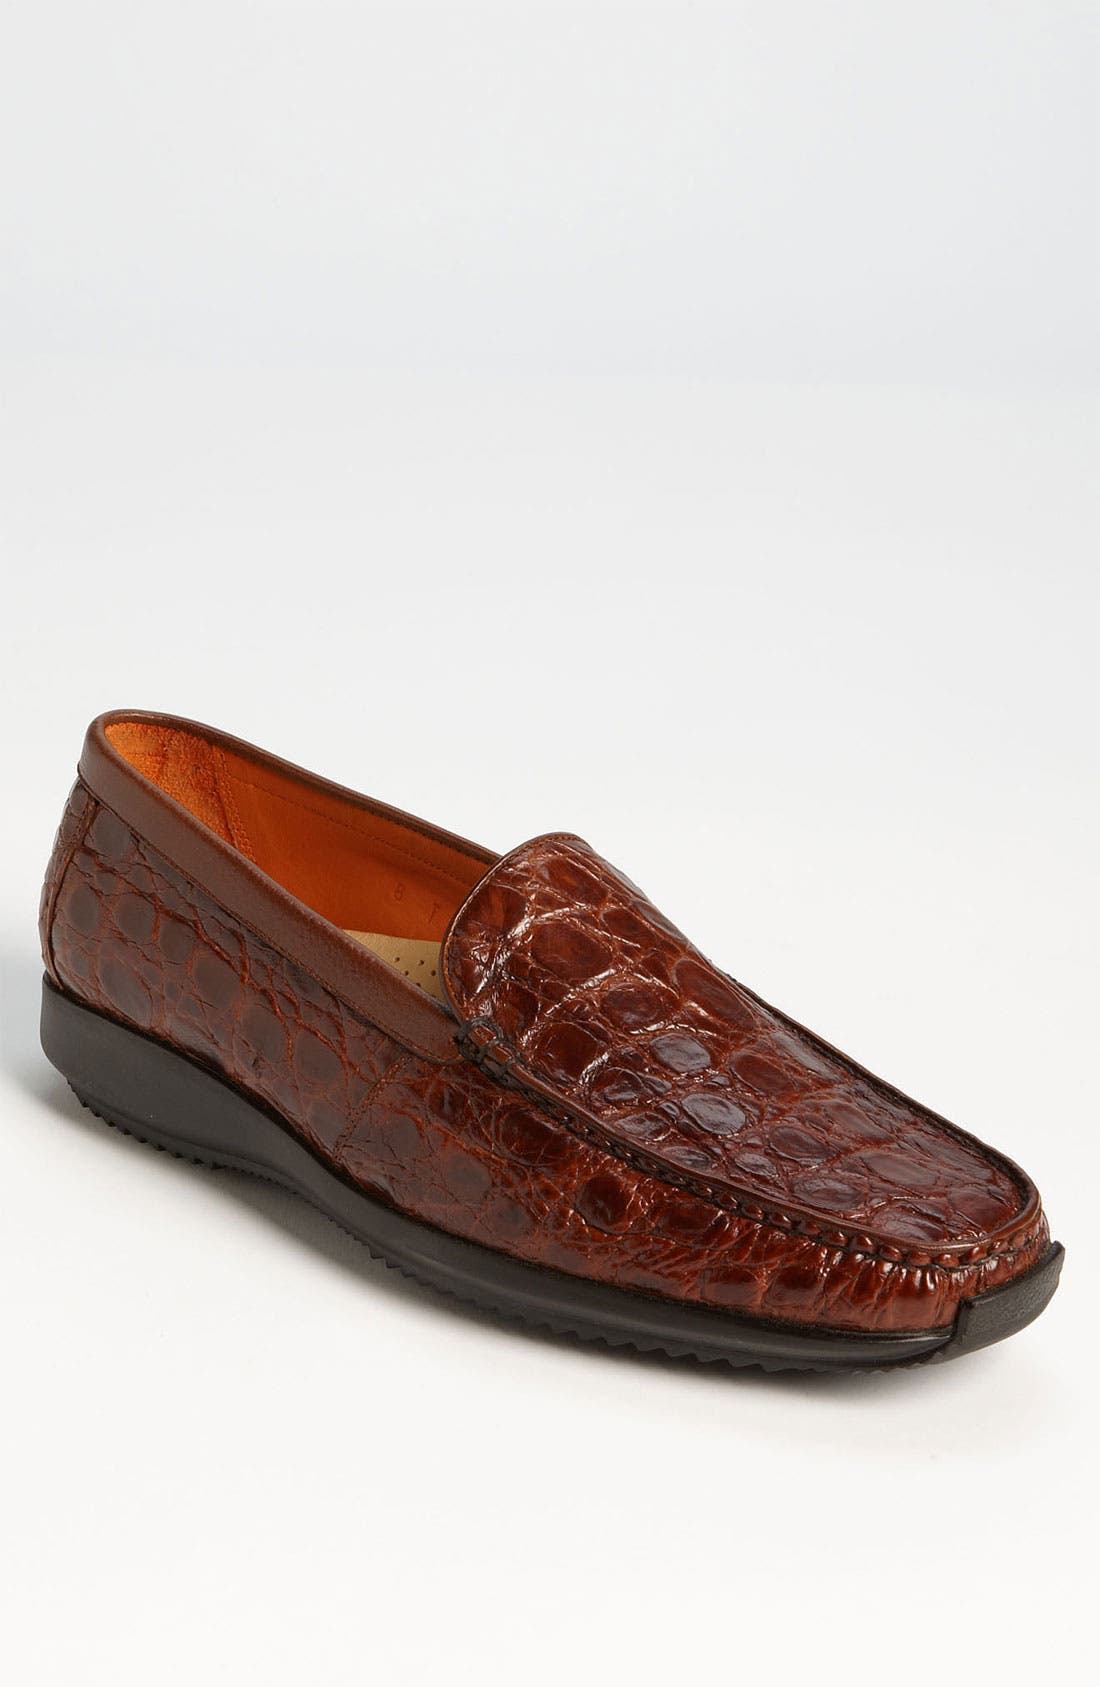 Alternate Image 1 Selected - Martin Dingman 'Arlo' Crocodile Loafer (Men)